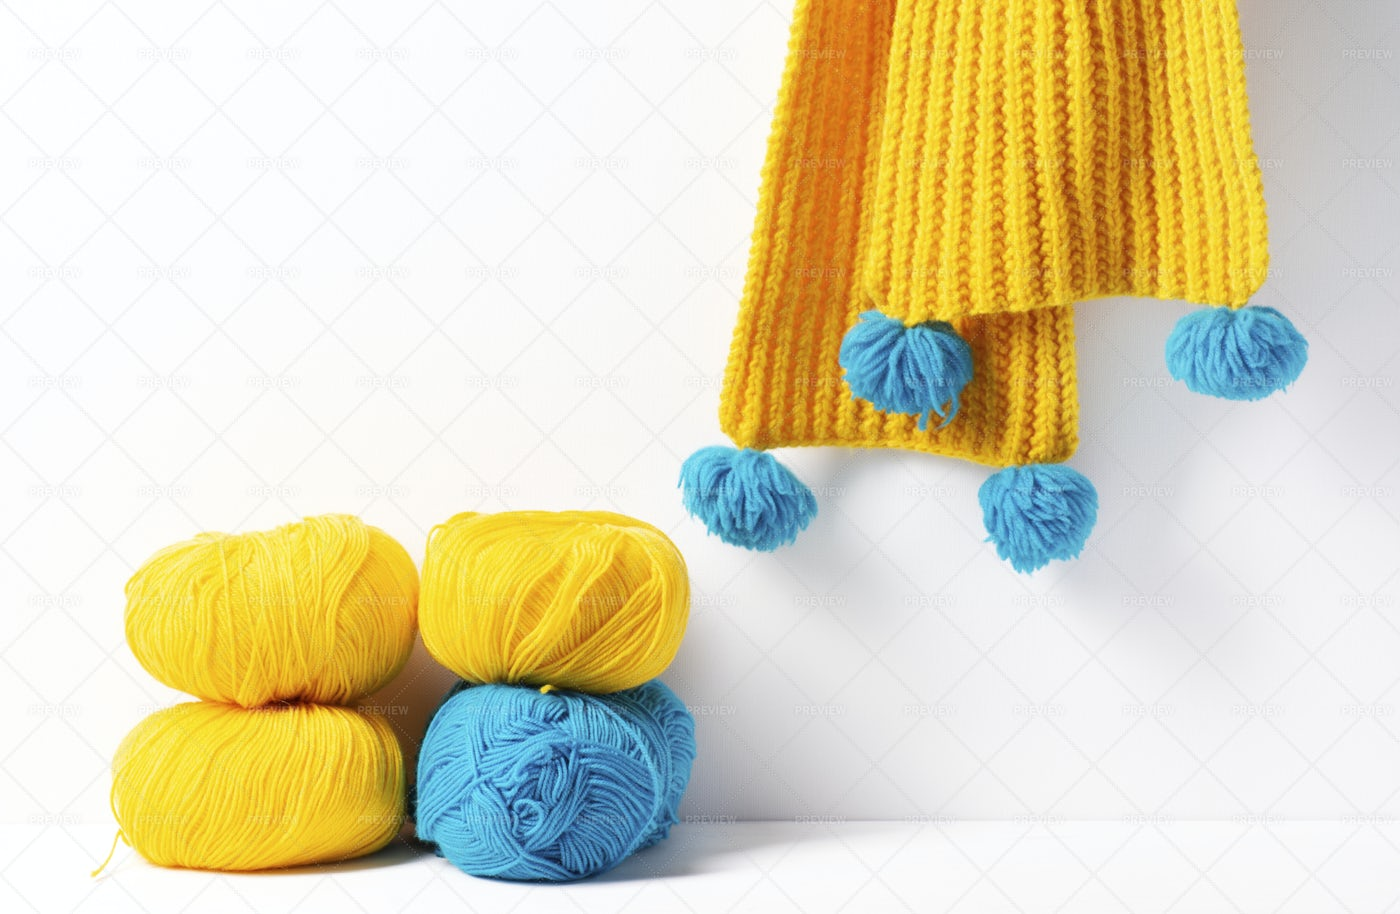 Yellow And Blue Yarn: Stock Photos